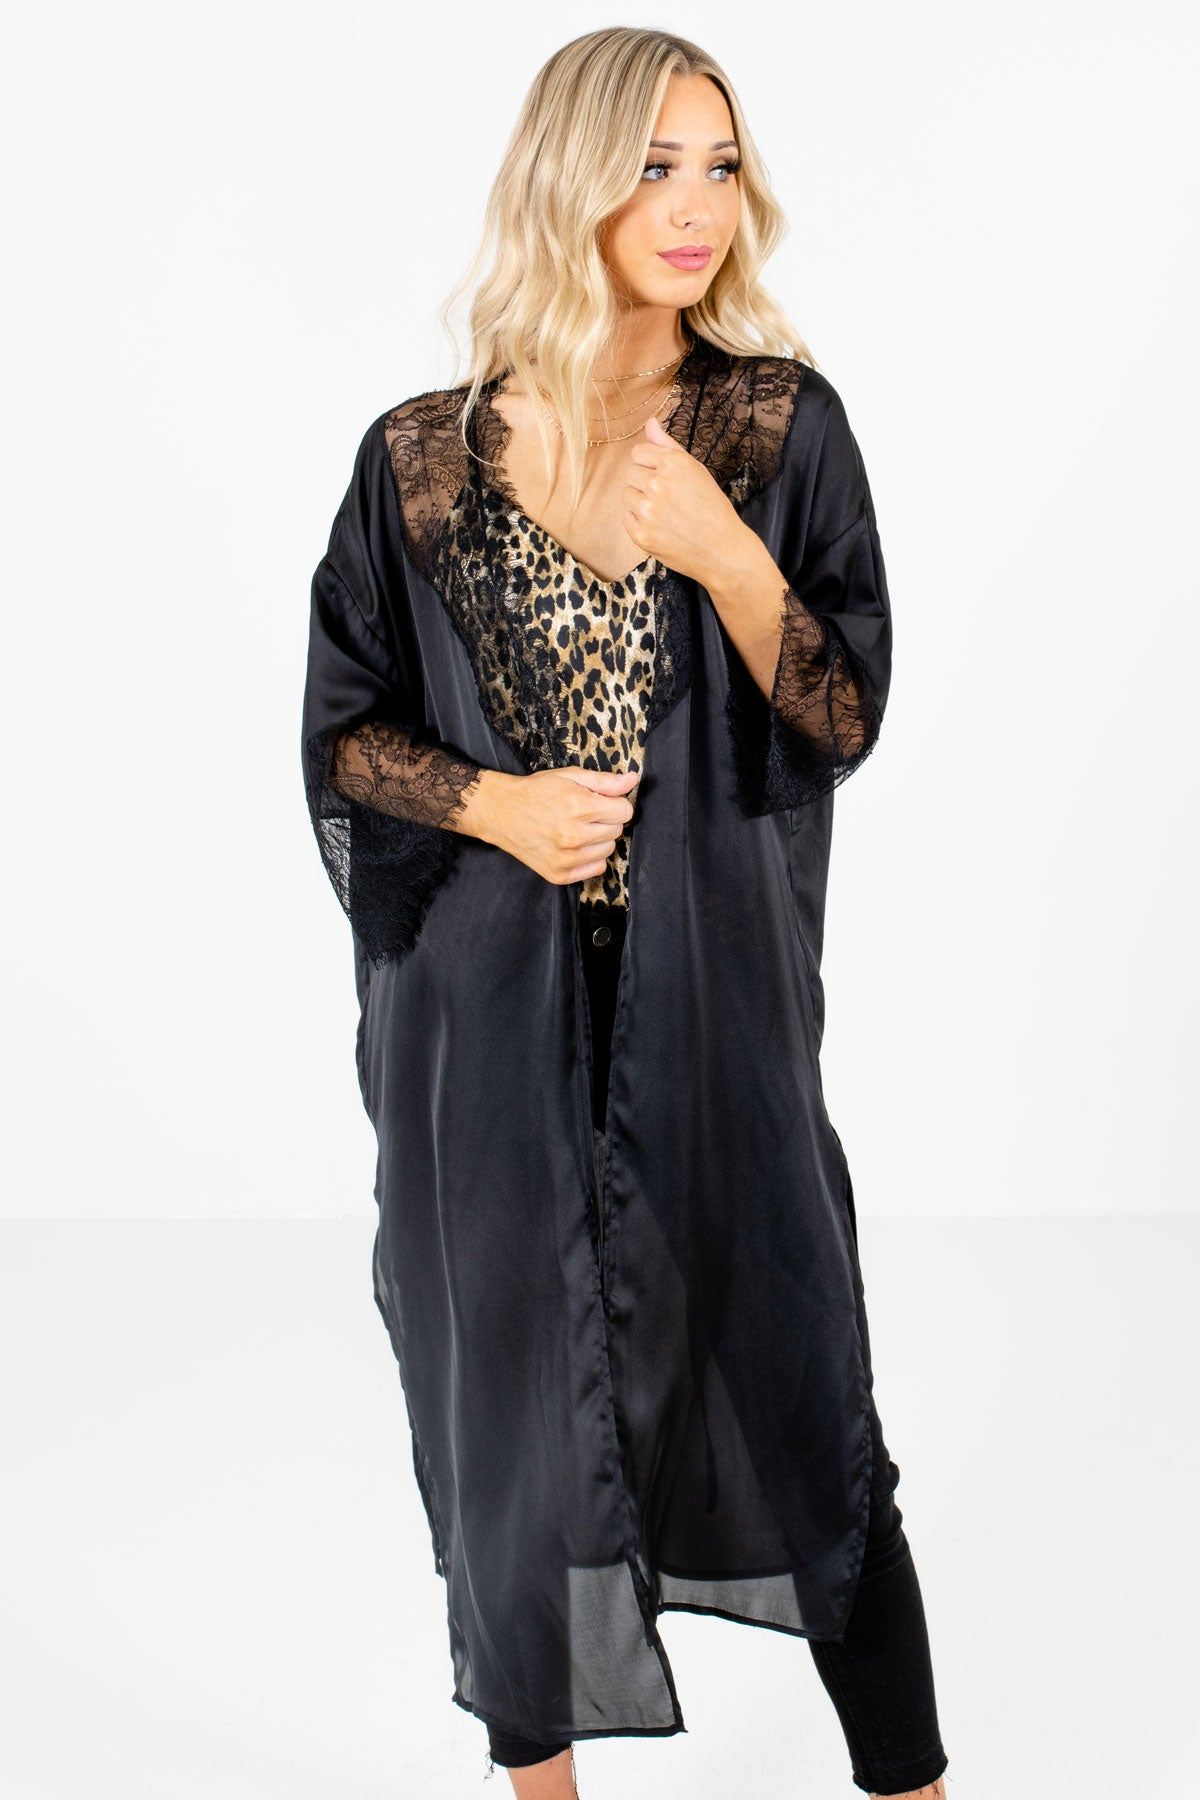 Black Lace Accented Boutique Kimonos for Women